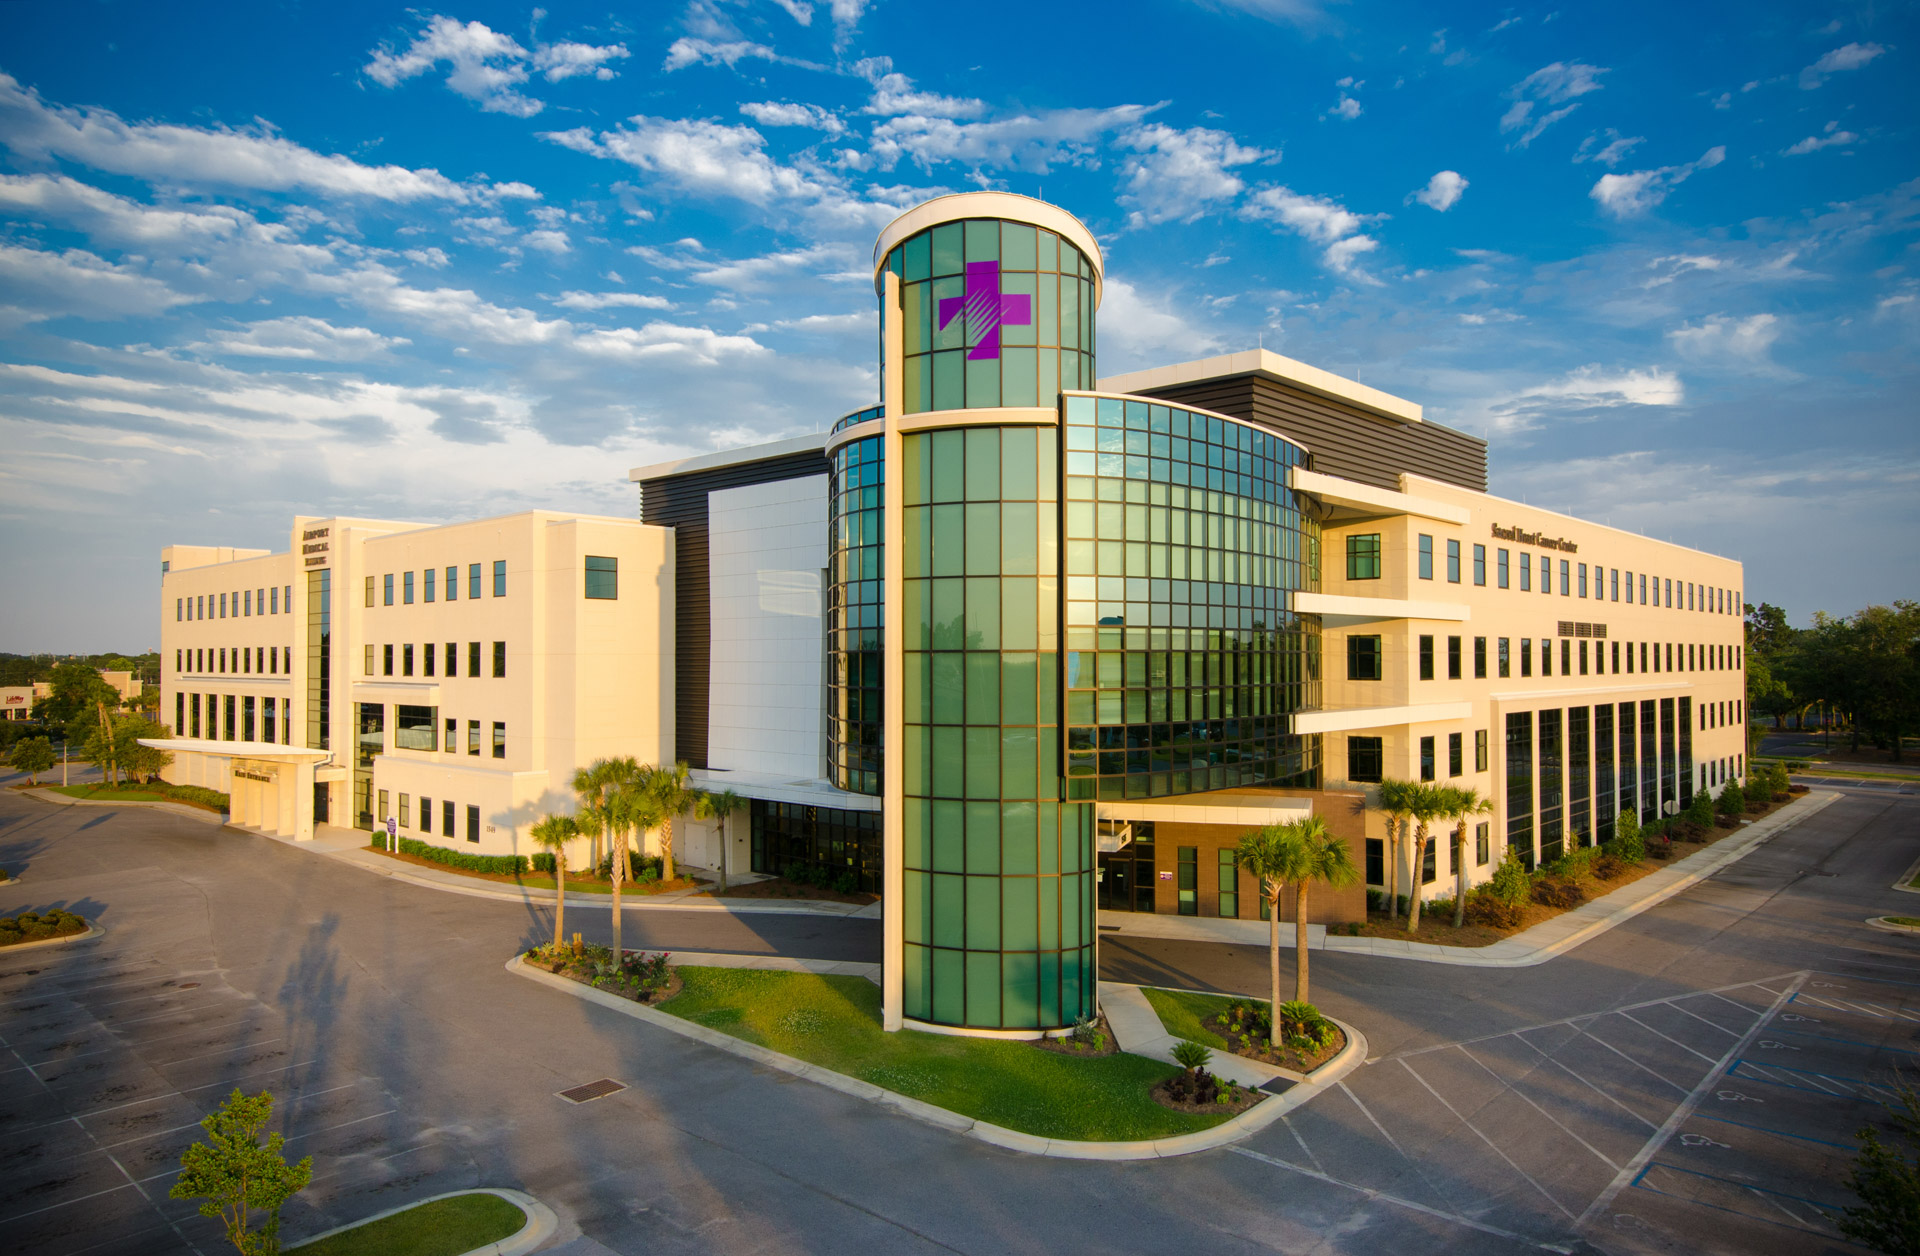 Sarah Canon Cancer Center, Pensacola, Florida, Aerial Photo